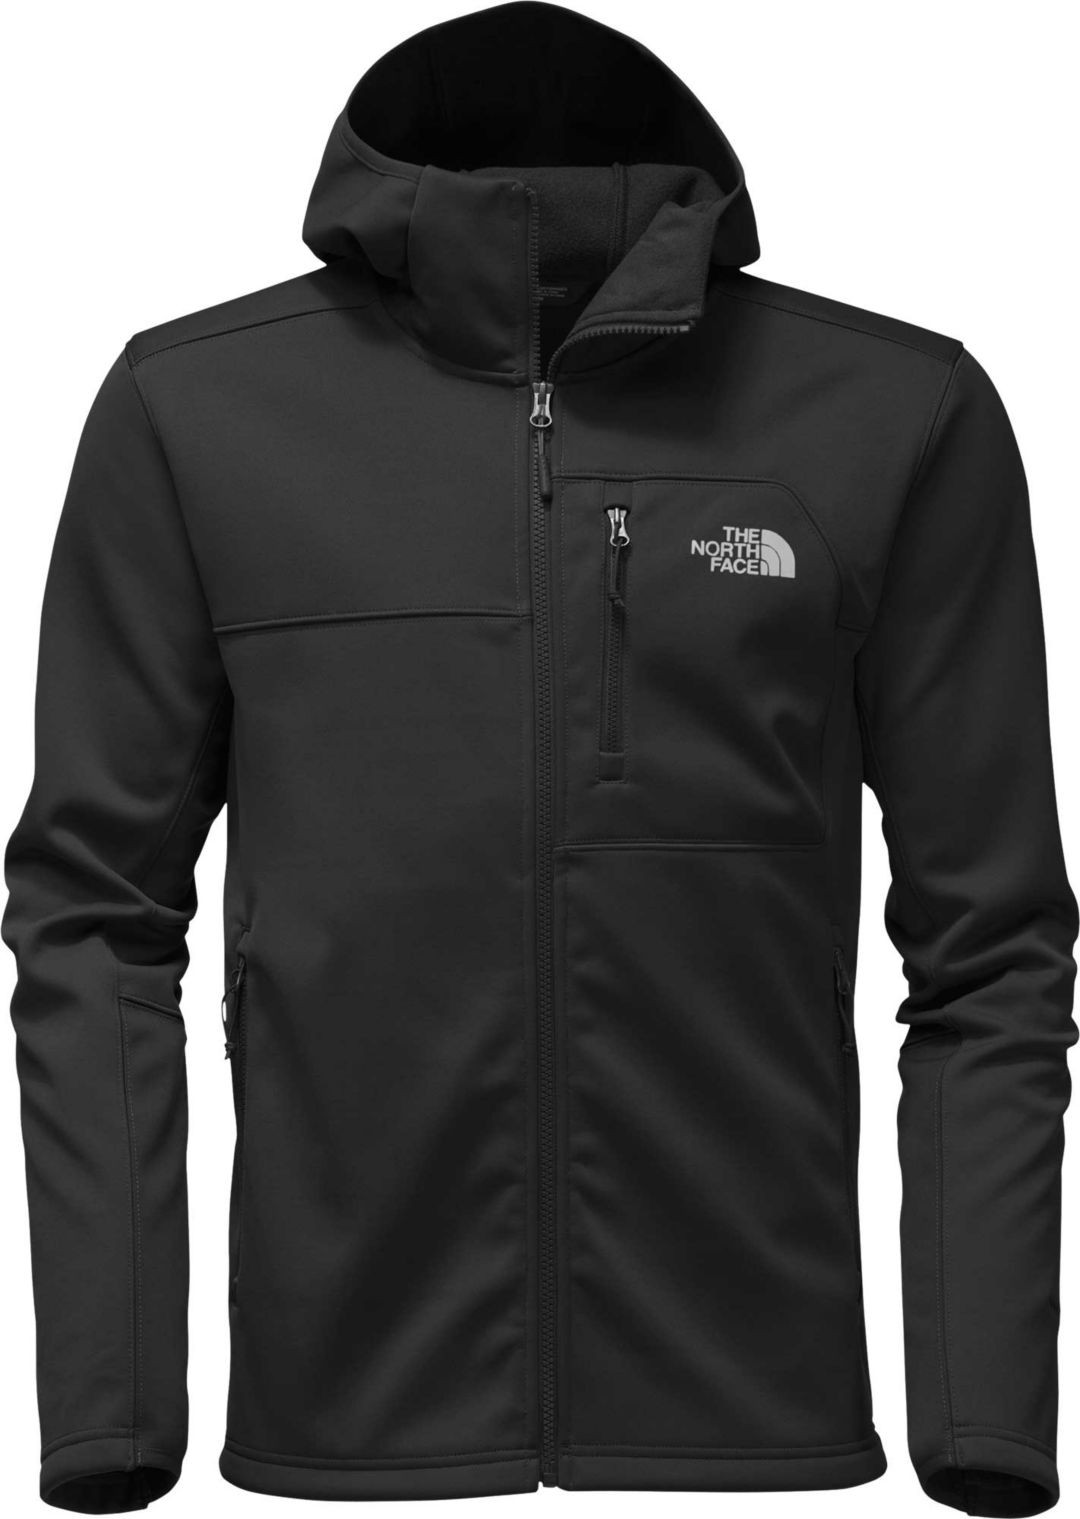 6f7260d89 The North Face Men's Apex Risor Hooded Soft Shell Jacket